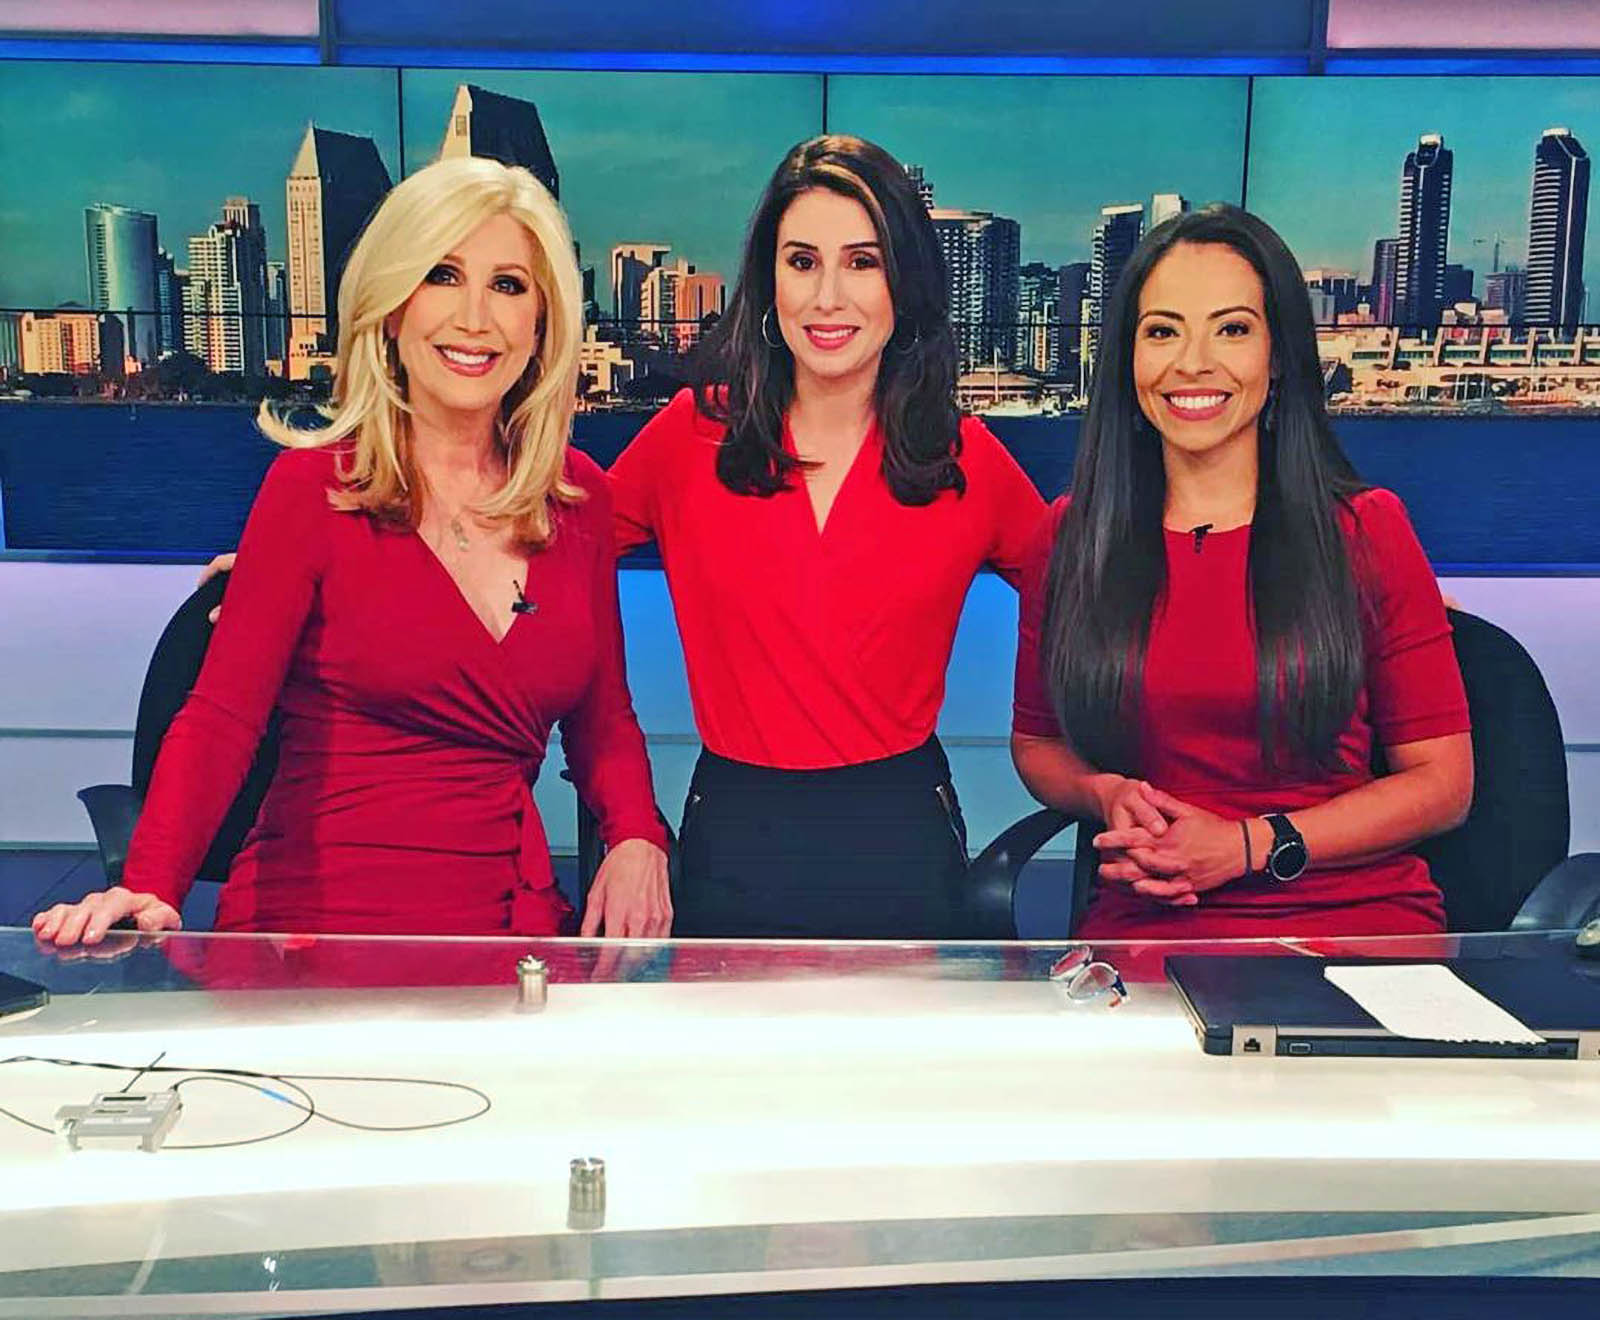 Kimberly Hunt, Lindsey Peña, and Angelica Campos at 10 News San Diego